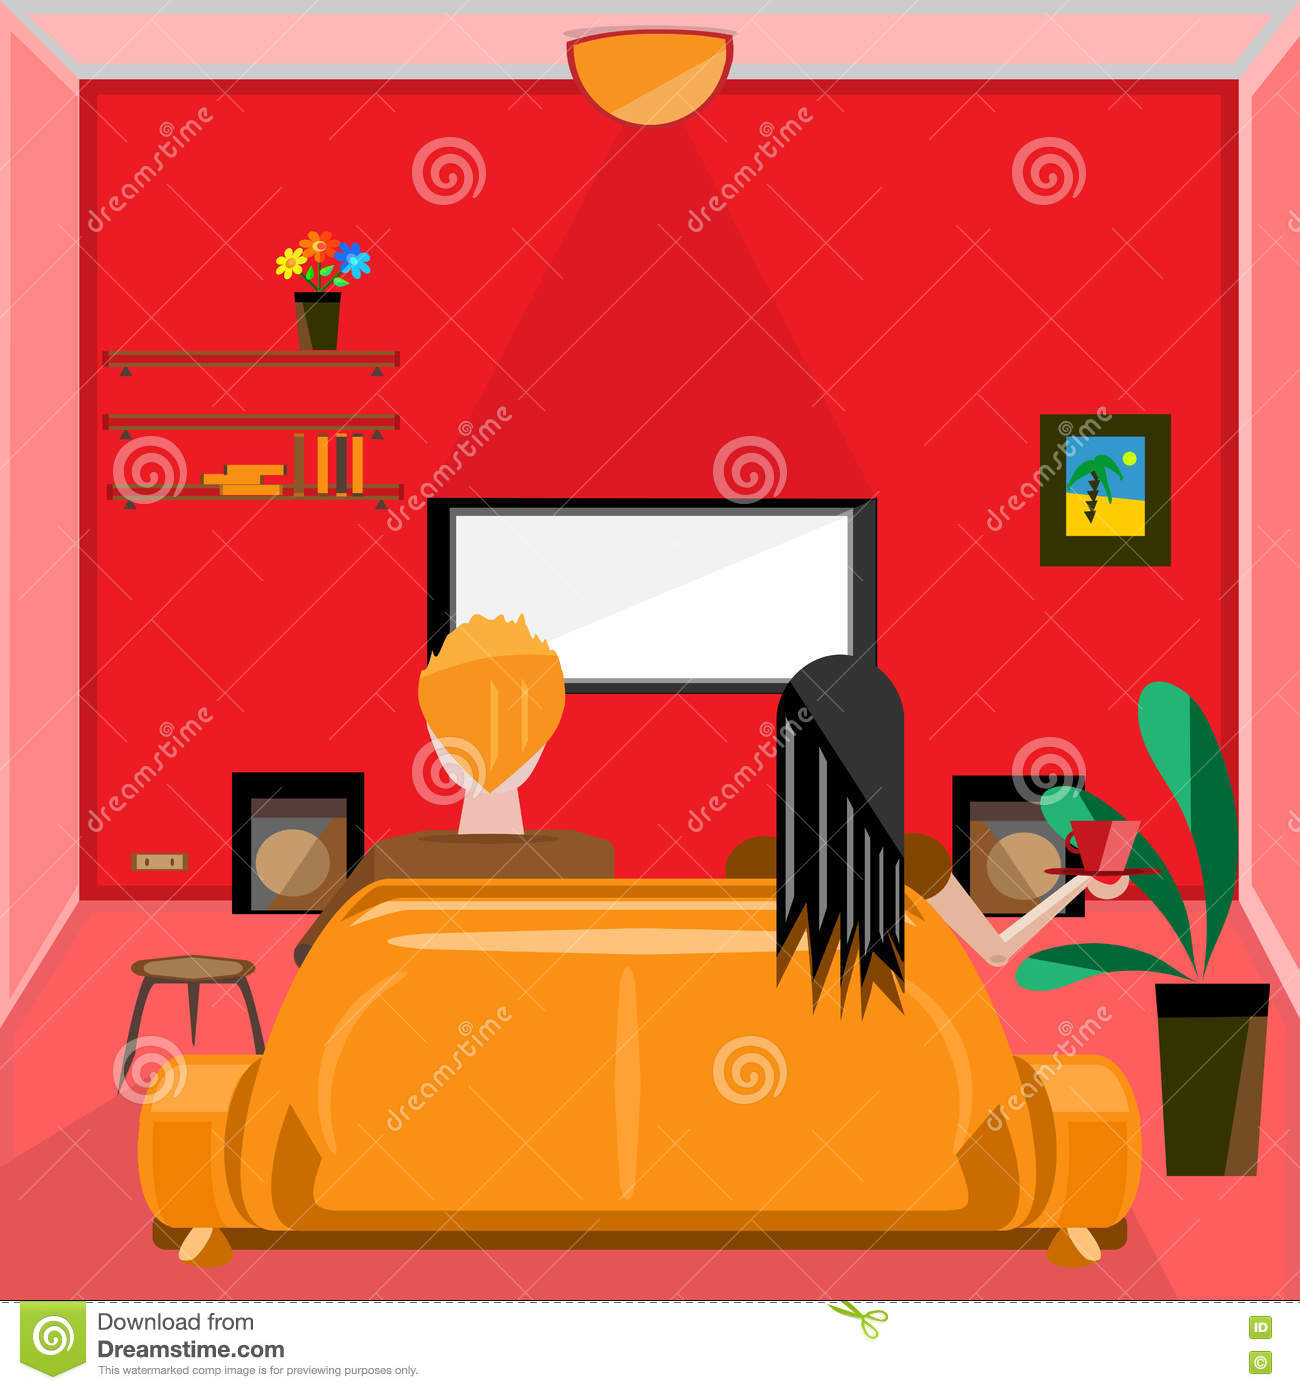 Vector Of Living Room Stock Vector Image Of Sofa: Flat Designed Living Room With People Stock Vector